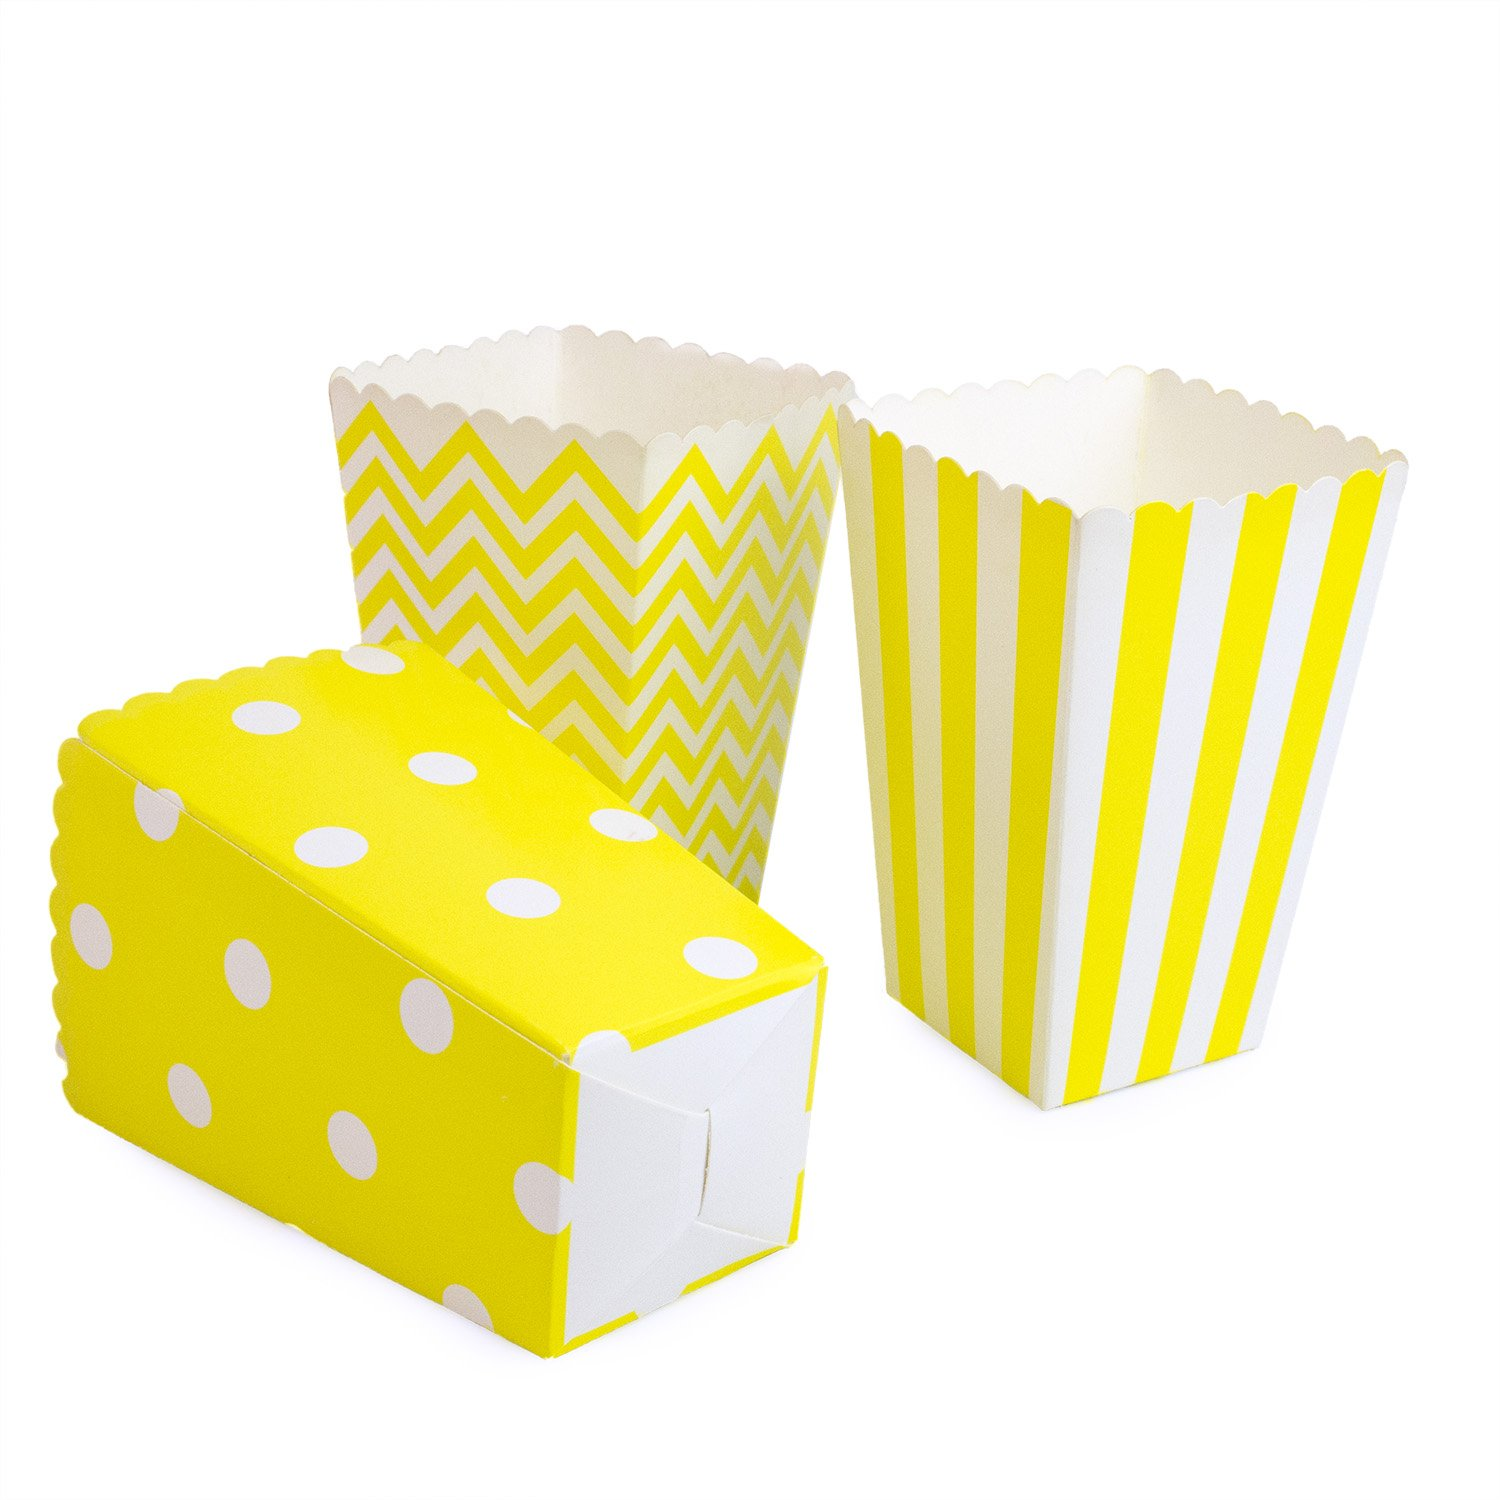 Popcorn Boxes Yellow Cardboard 3 Designs - Chevron/Striped/ Polka Dot Popcorn Bags for Birthday Party, Baby Shower, Movie 36PCS